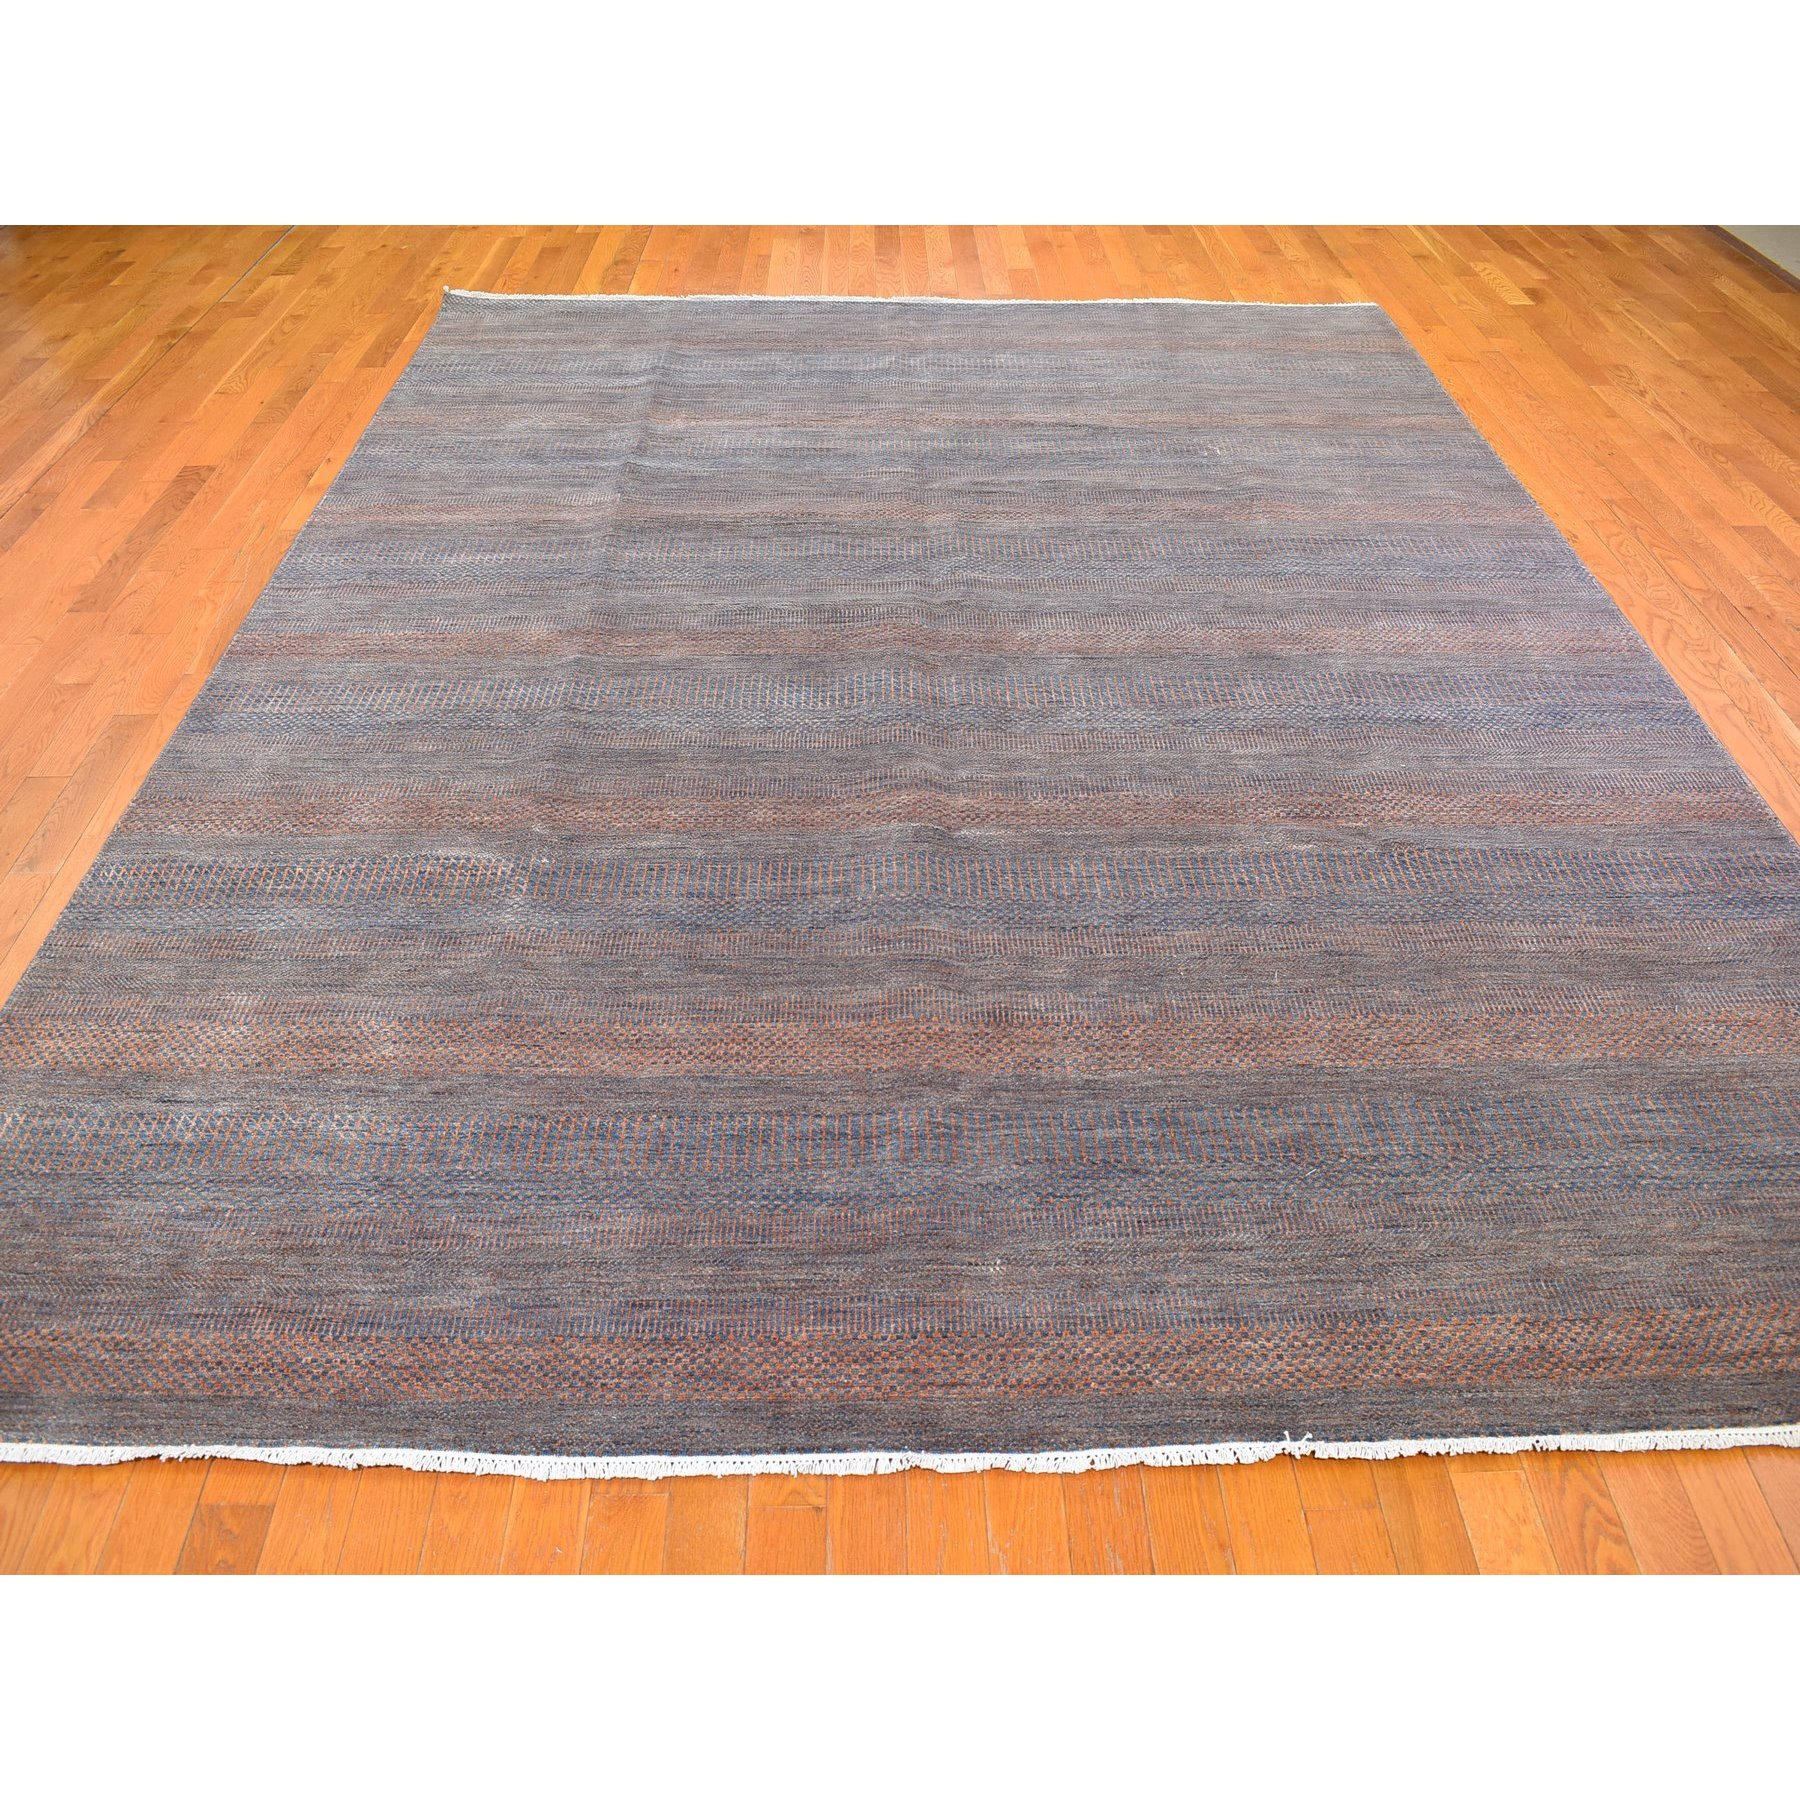 """9'1""""x12'2"""" Denim Blue with Touches of Orange Grass Design Wool and Silk Hand Knotted Oriental Rug"""